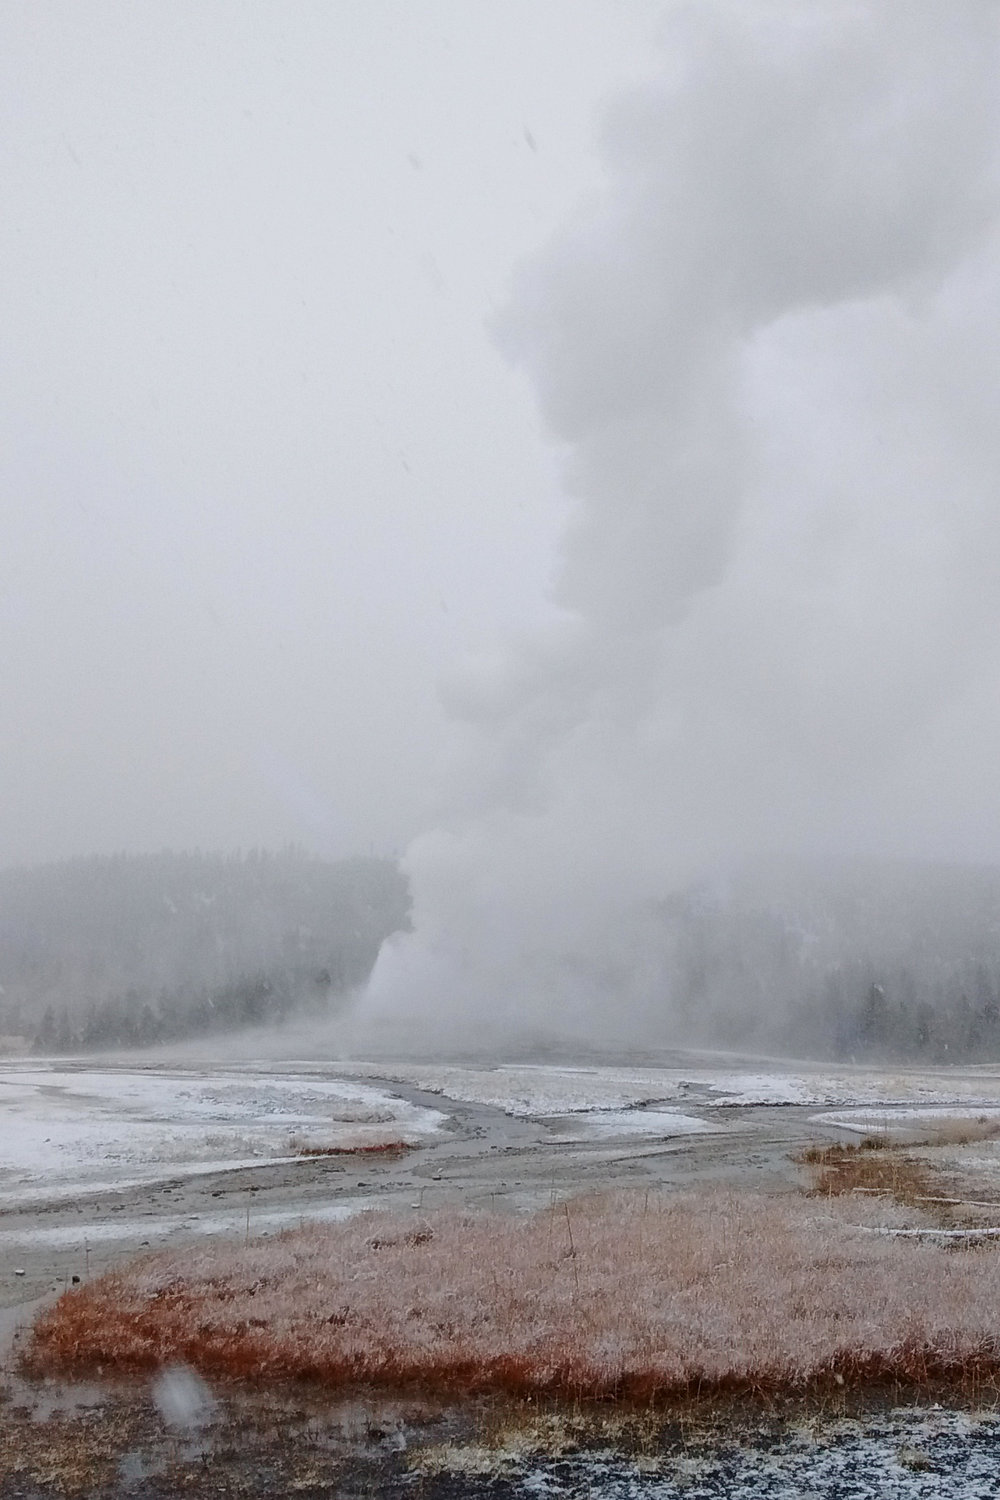 Weather is unpredictable in Yellowstone. Old Faithful Geyser erupting during a snow storm in July.